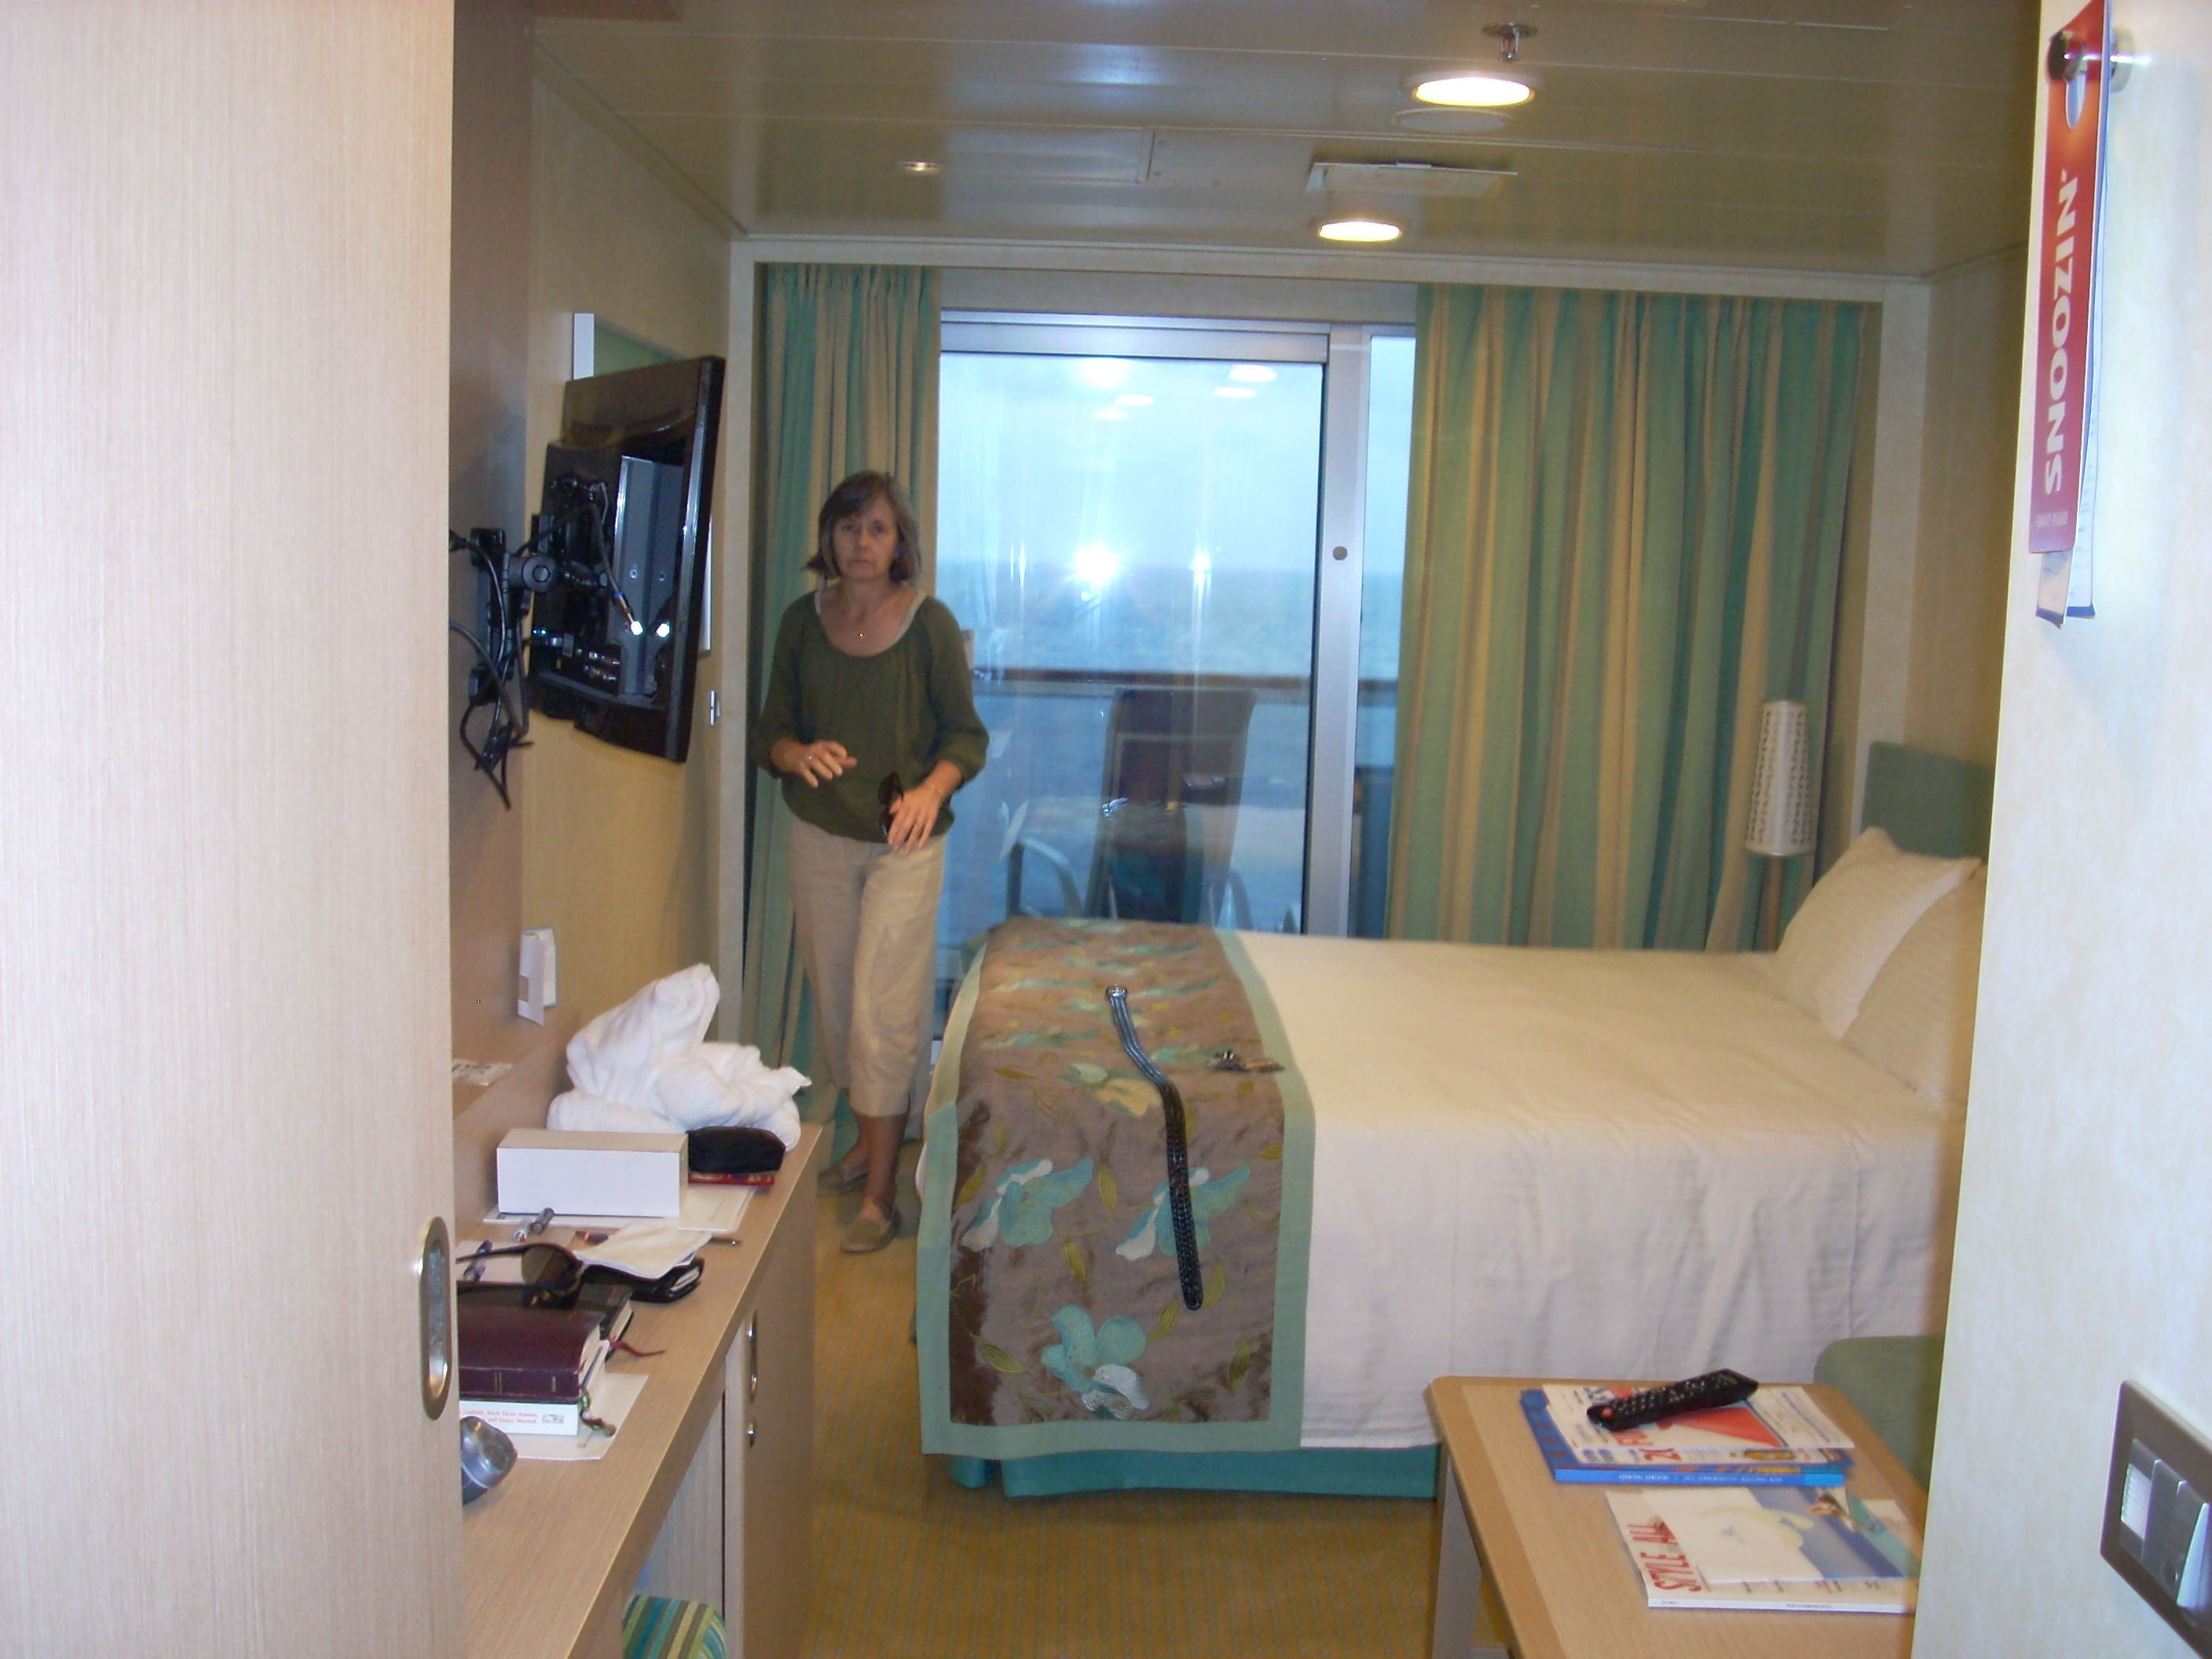 Rooms Review: Carnival Sunshine Cruise Review